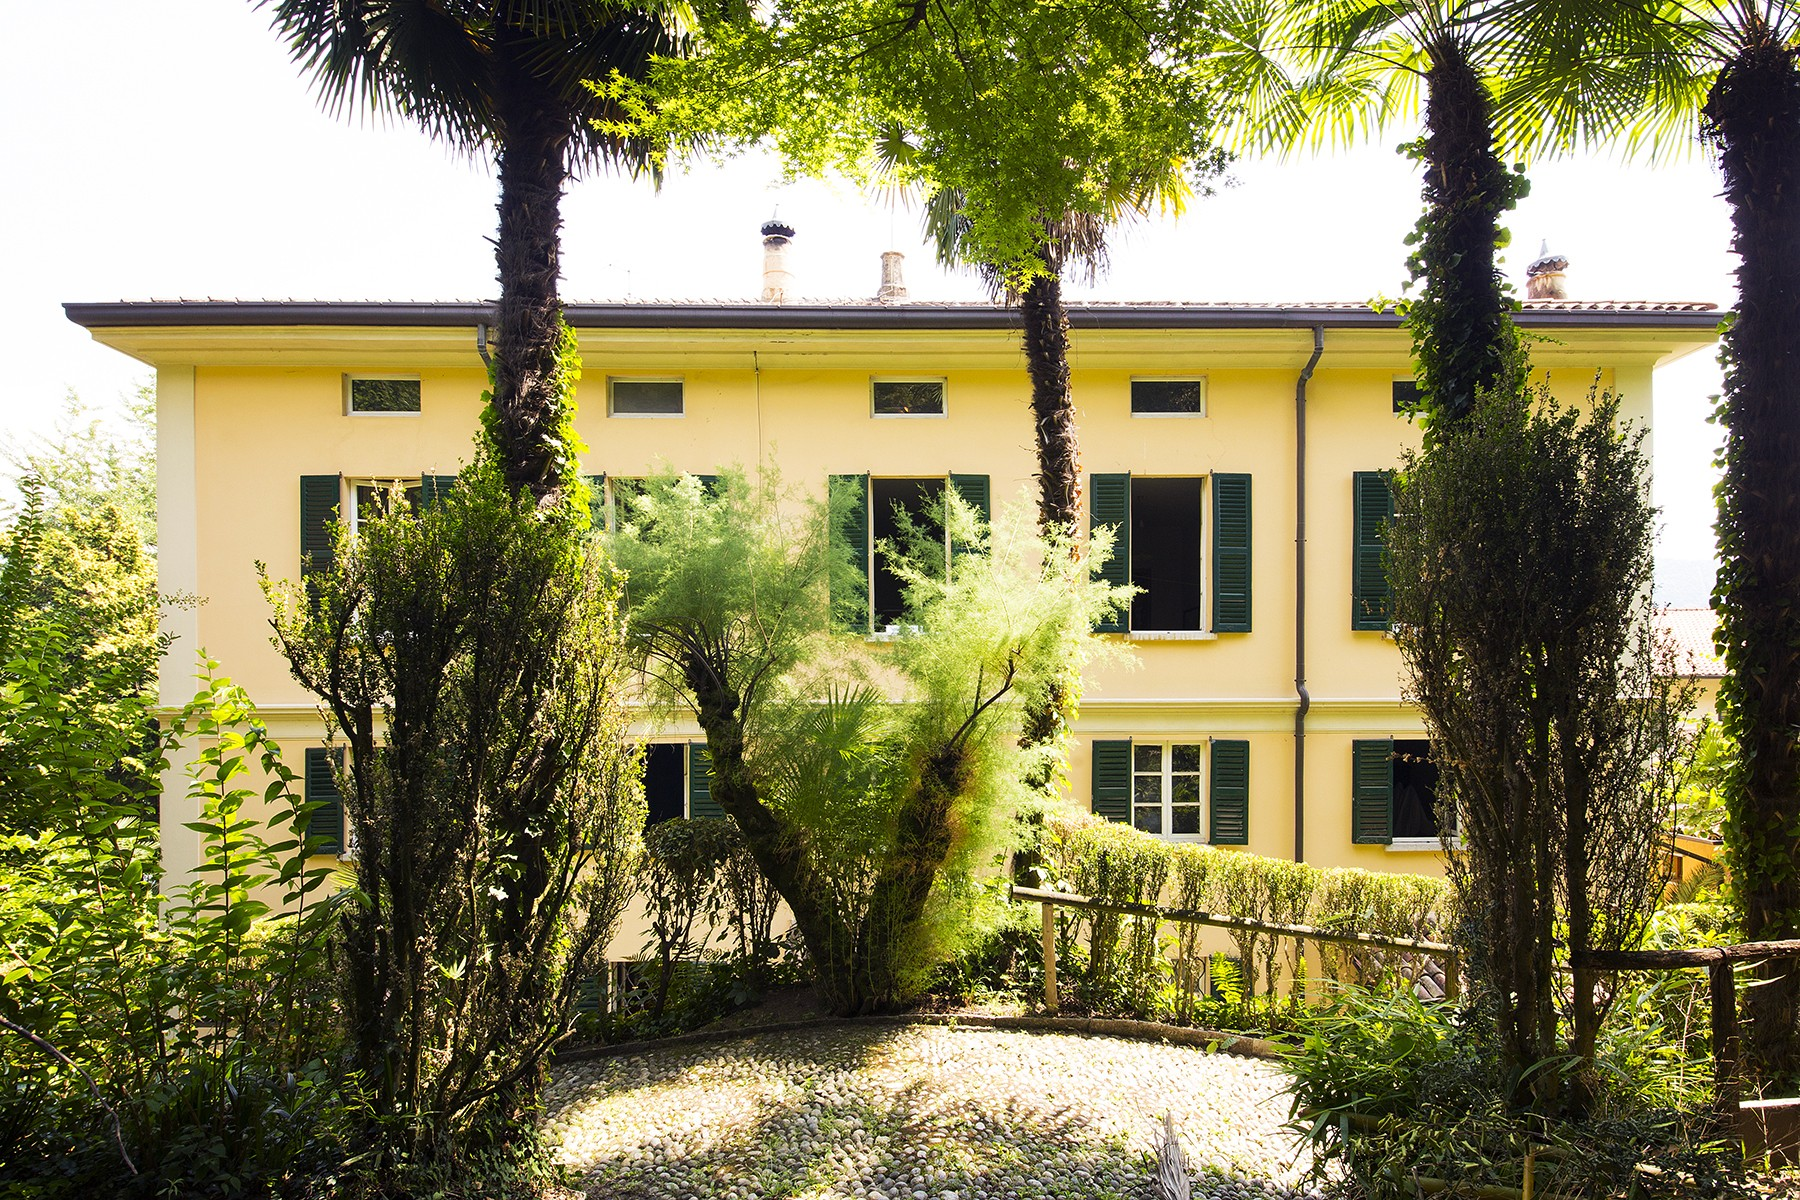 Additional photo for property listing at Elegant historic villa overlooking the Lake of Como Via Regina Griante, Como 22011 Italia